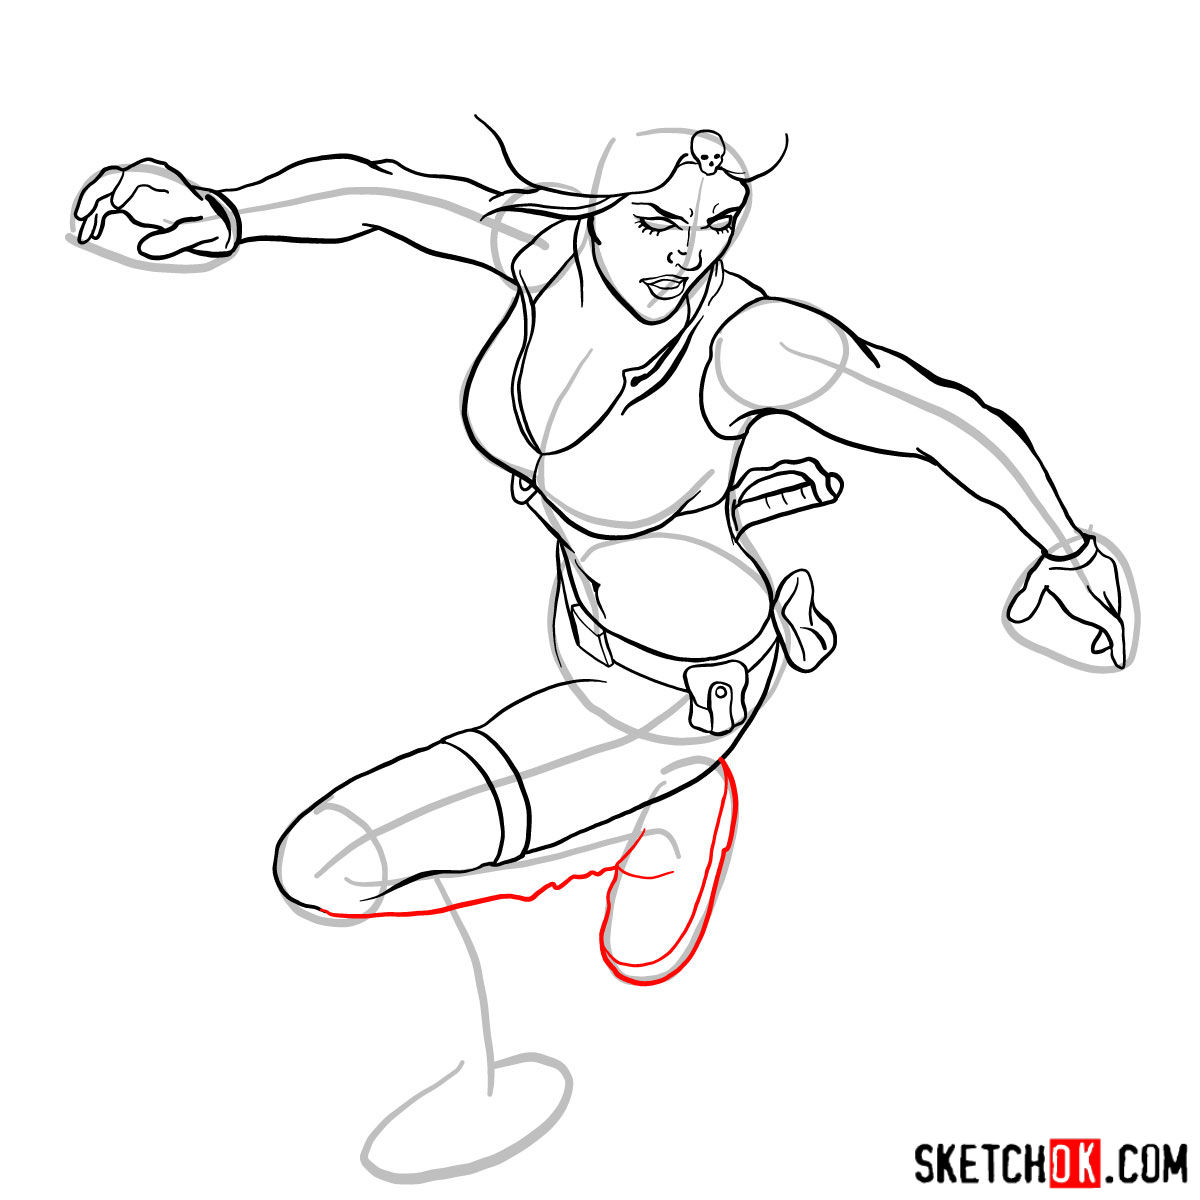 How to draw Mystique (Raven Darkhölme) from Marvel X-Men comics - step 13